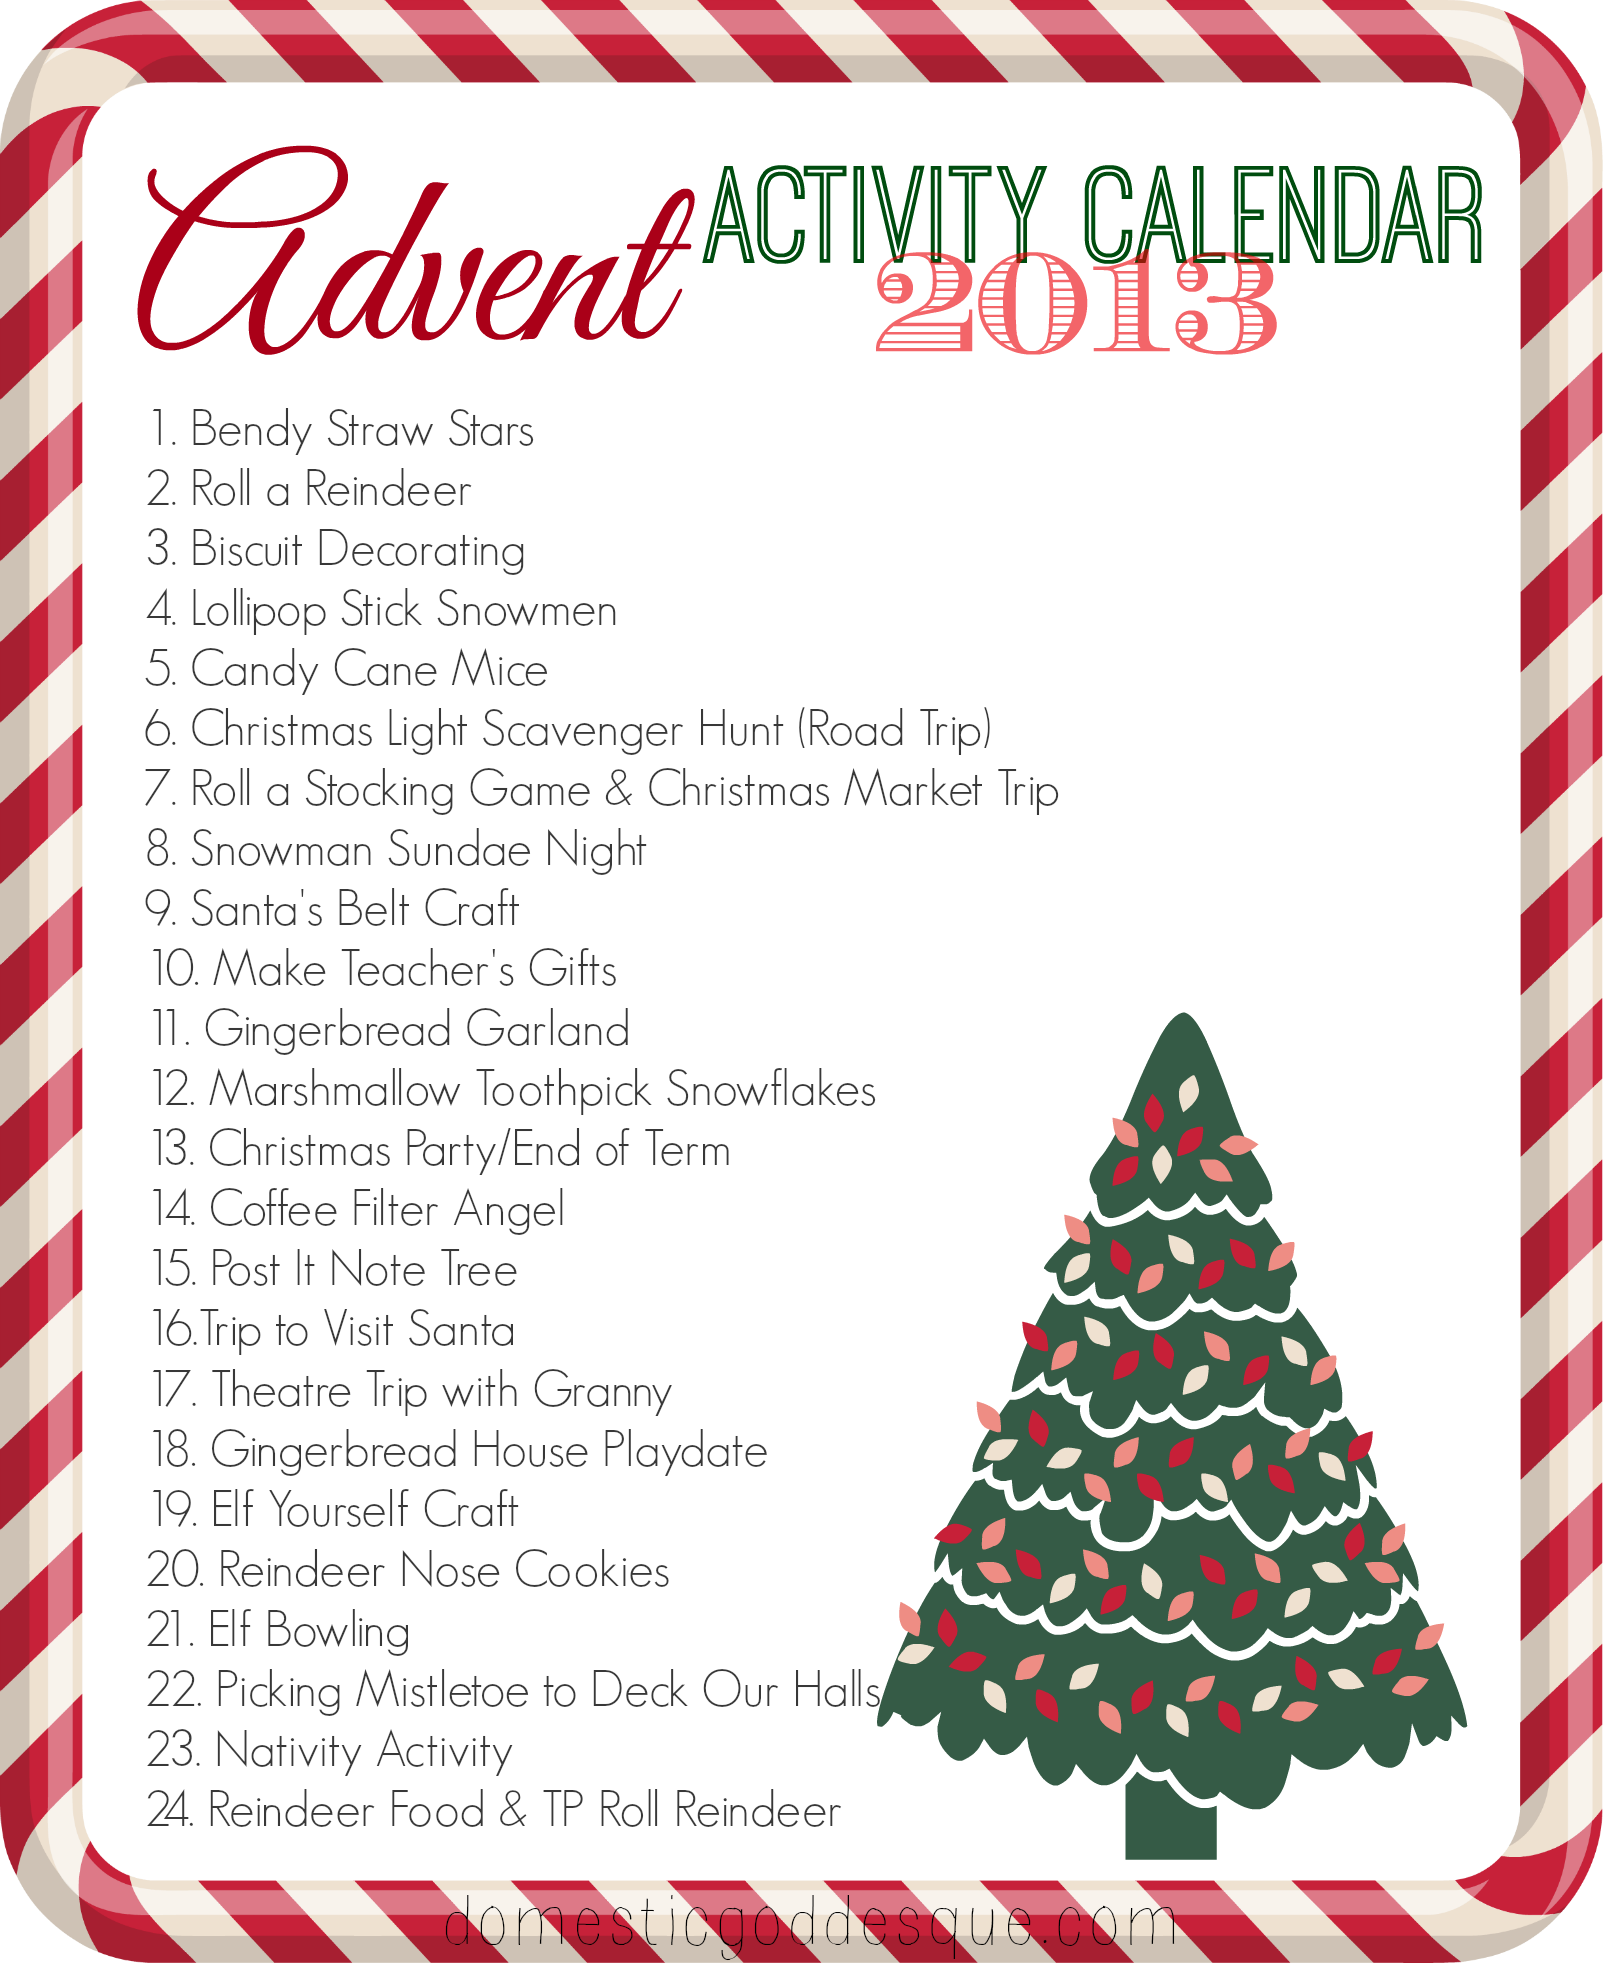 Our  Advent Activity Calendar Post With Current Links Live On